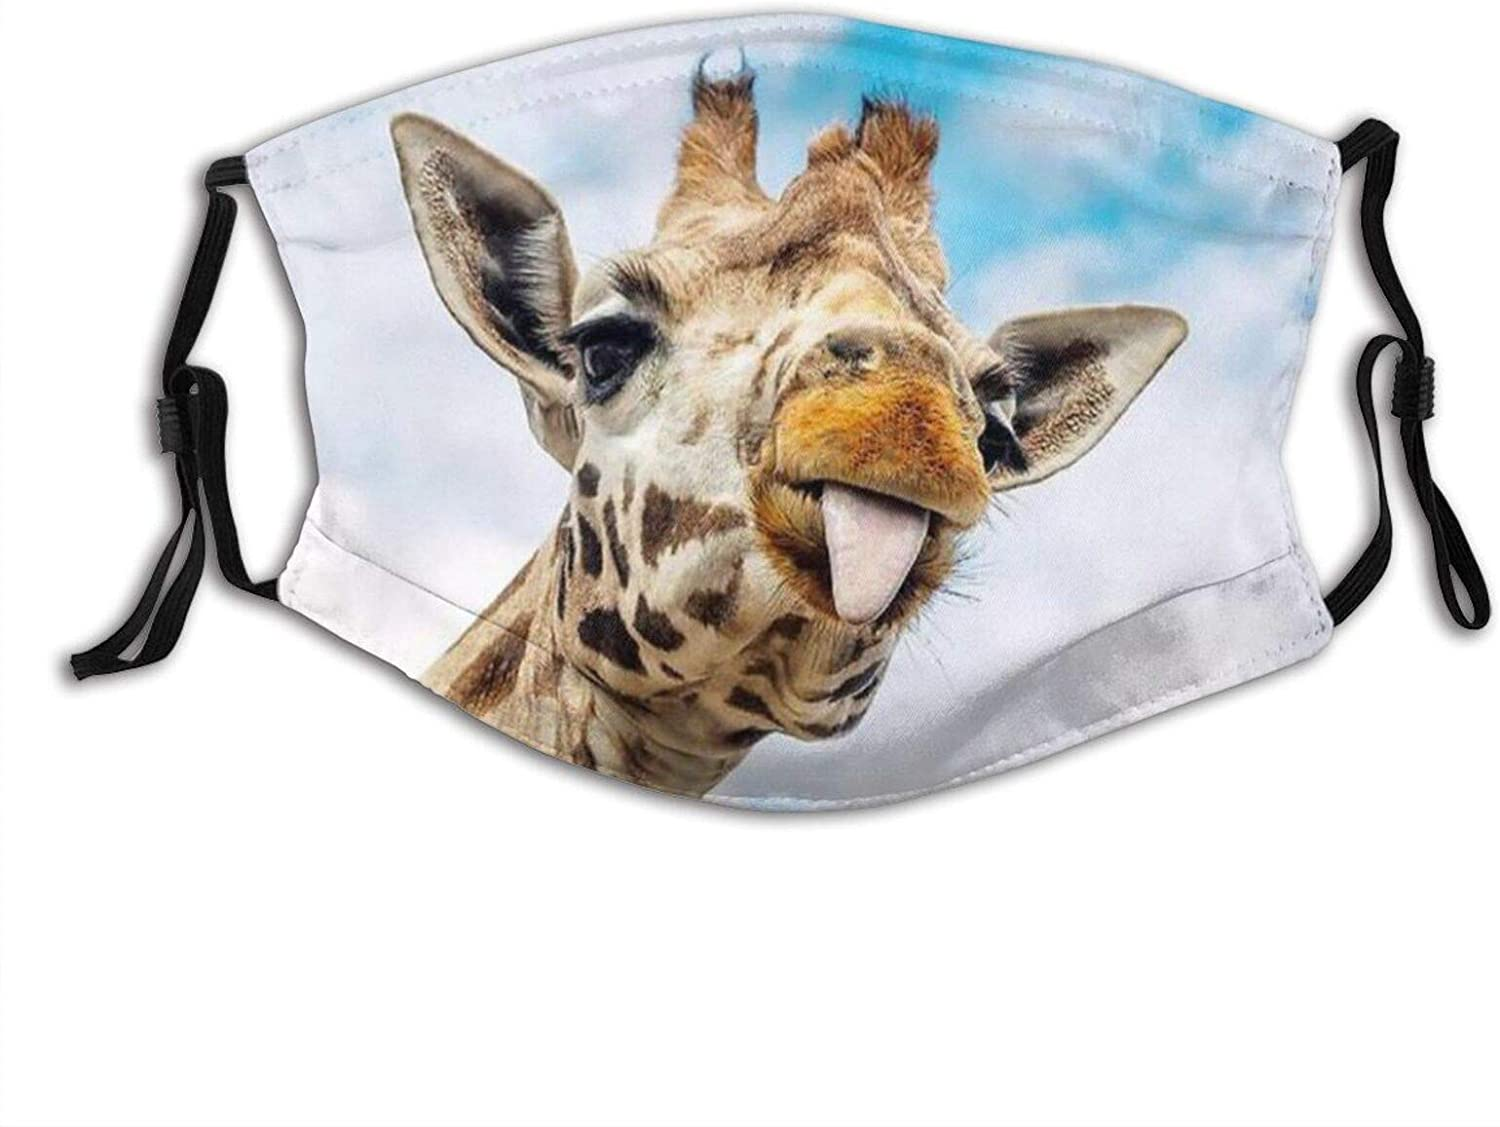 Funny Giraffe Face Giraffe-Face Mask Balaclava, Washable&Reusable With 2 Filters, For Adult Women Men&Teens